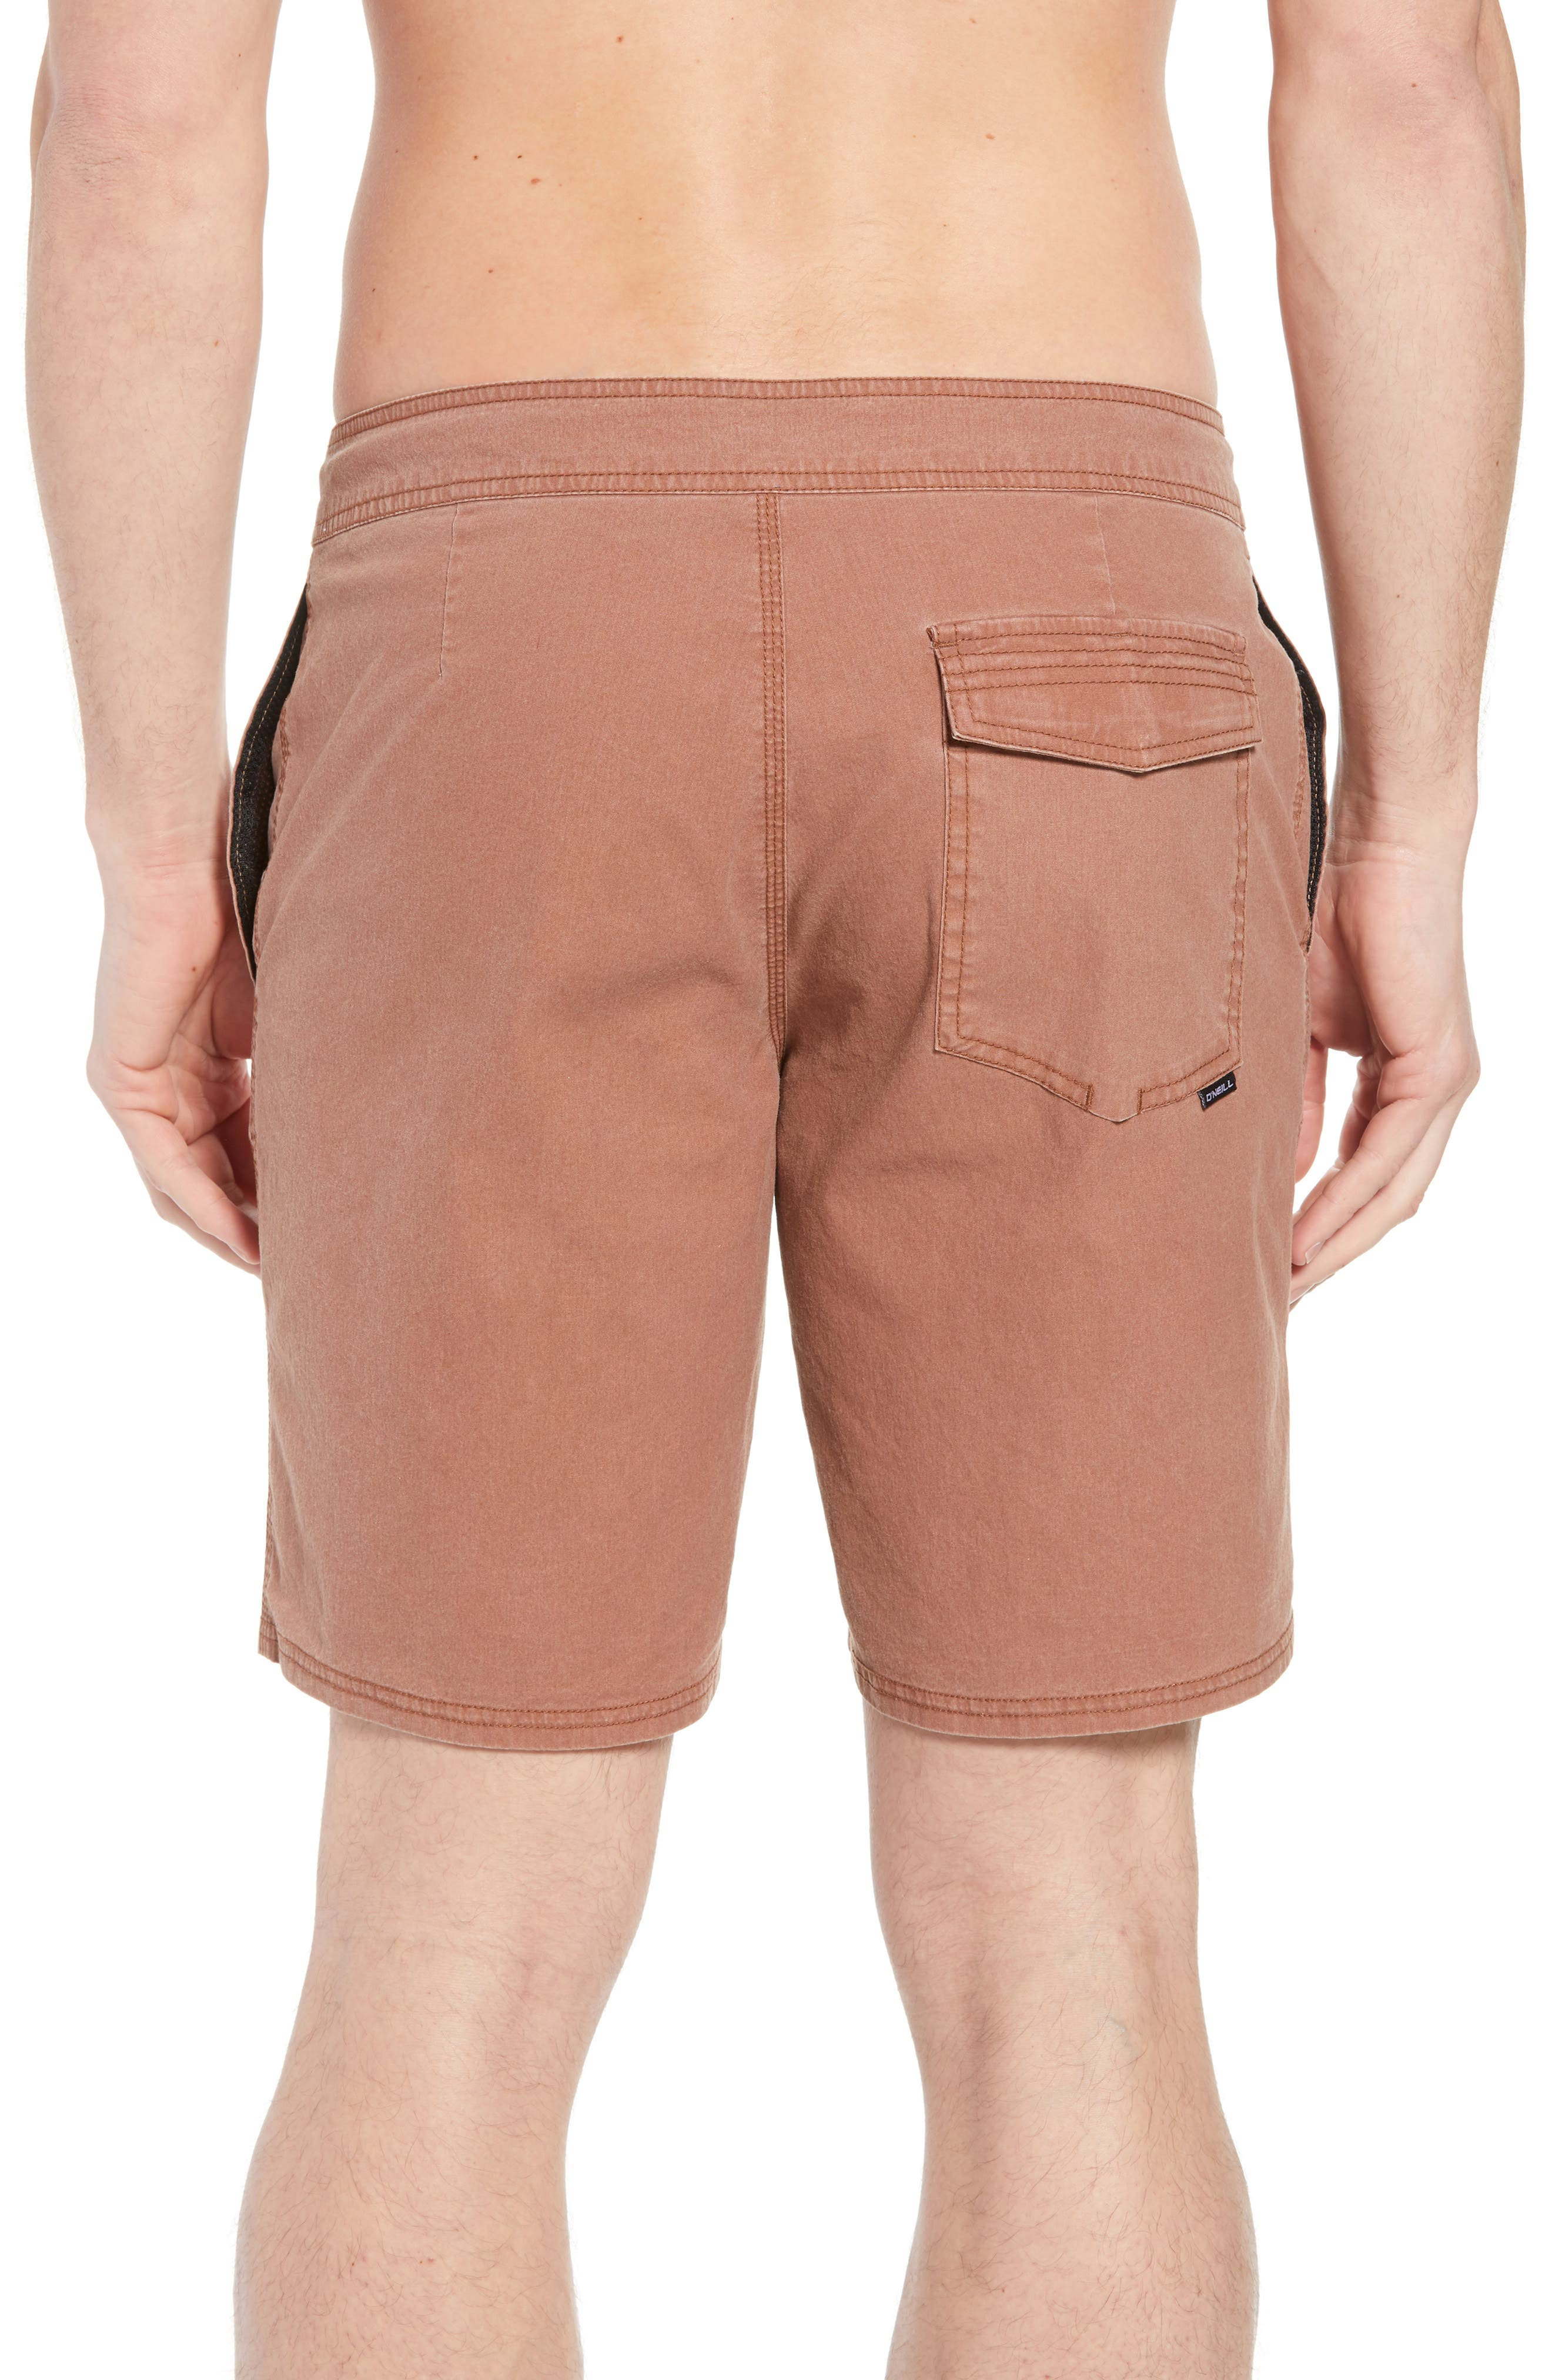 Faded Cruzer Board Shorts,                             Alternate thumbnail 2, color,                             218